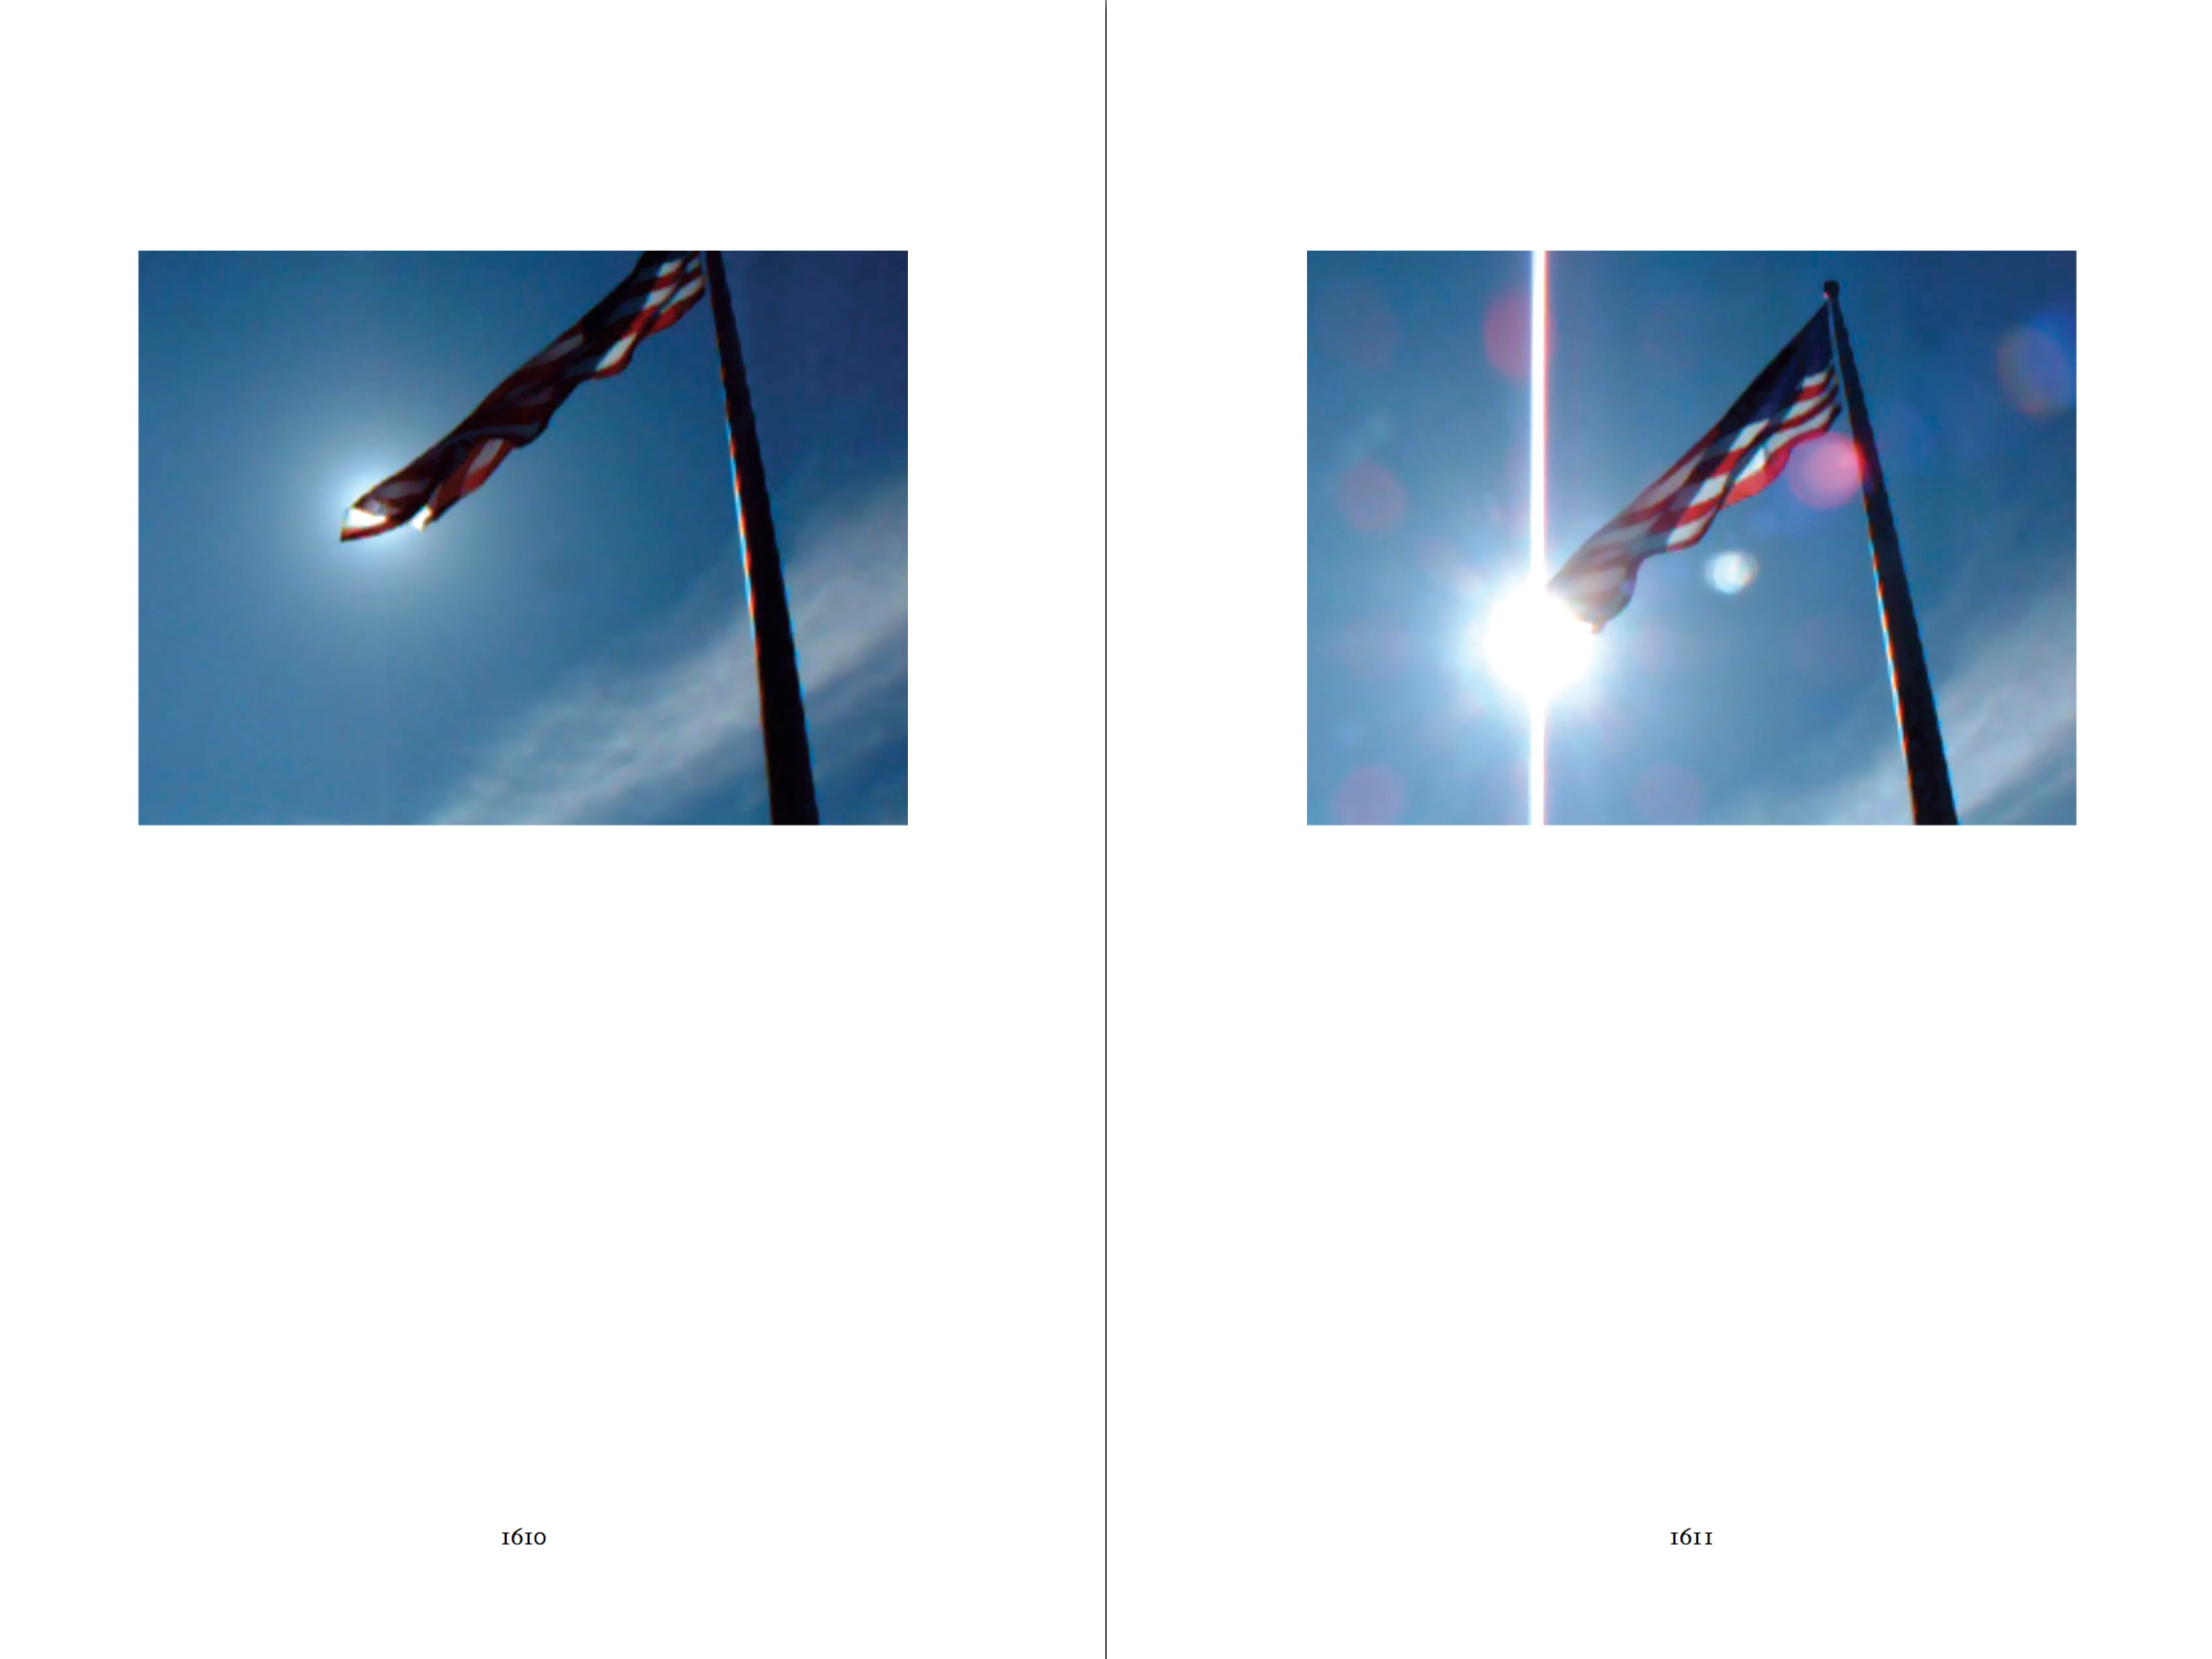 Two-page spread of the hardcover, printed version of the novel theMystery.doc by Matthew McIntosh. Verso, Recto: Images of an American flag on a flagpole.